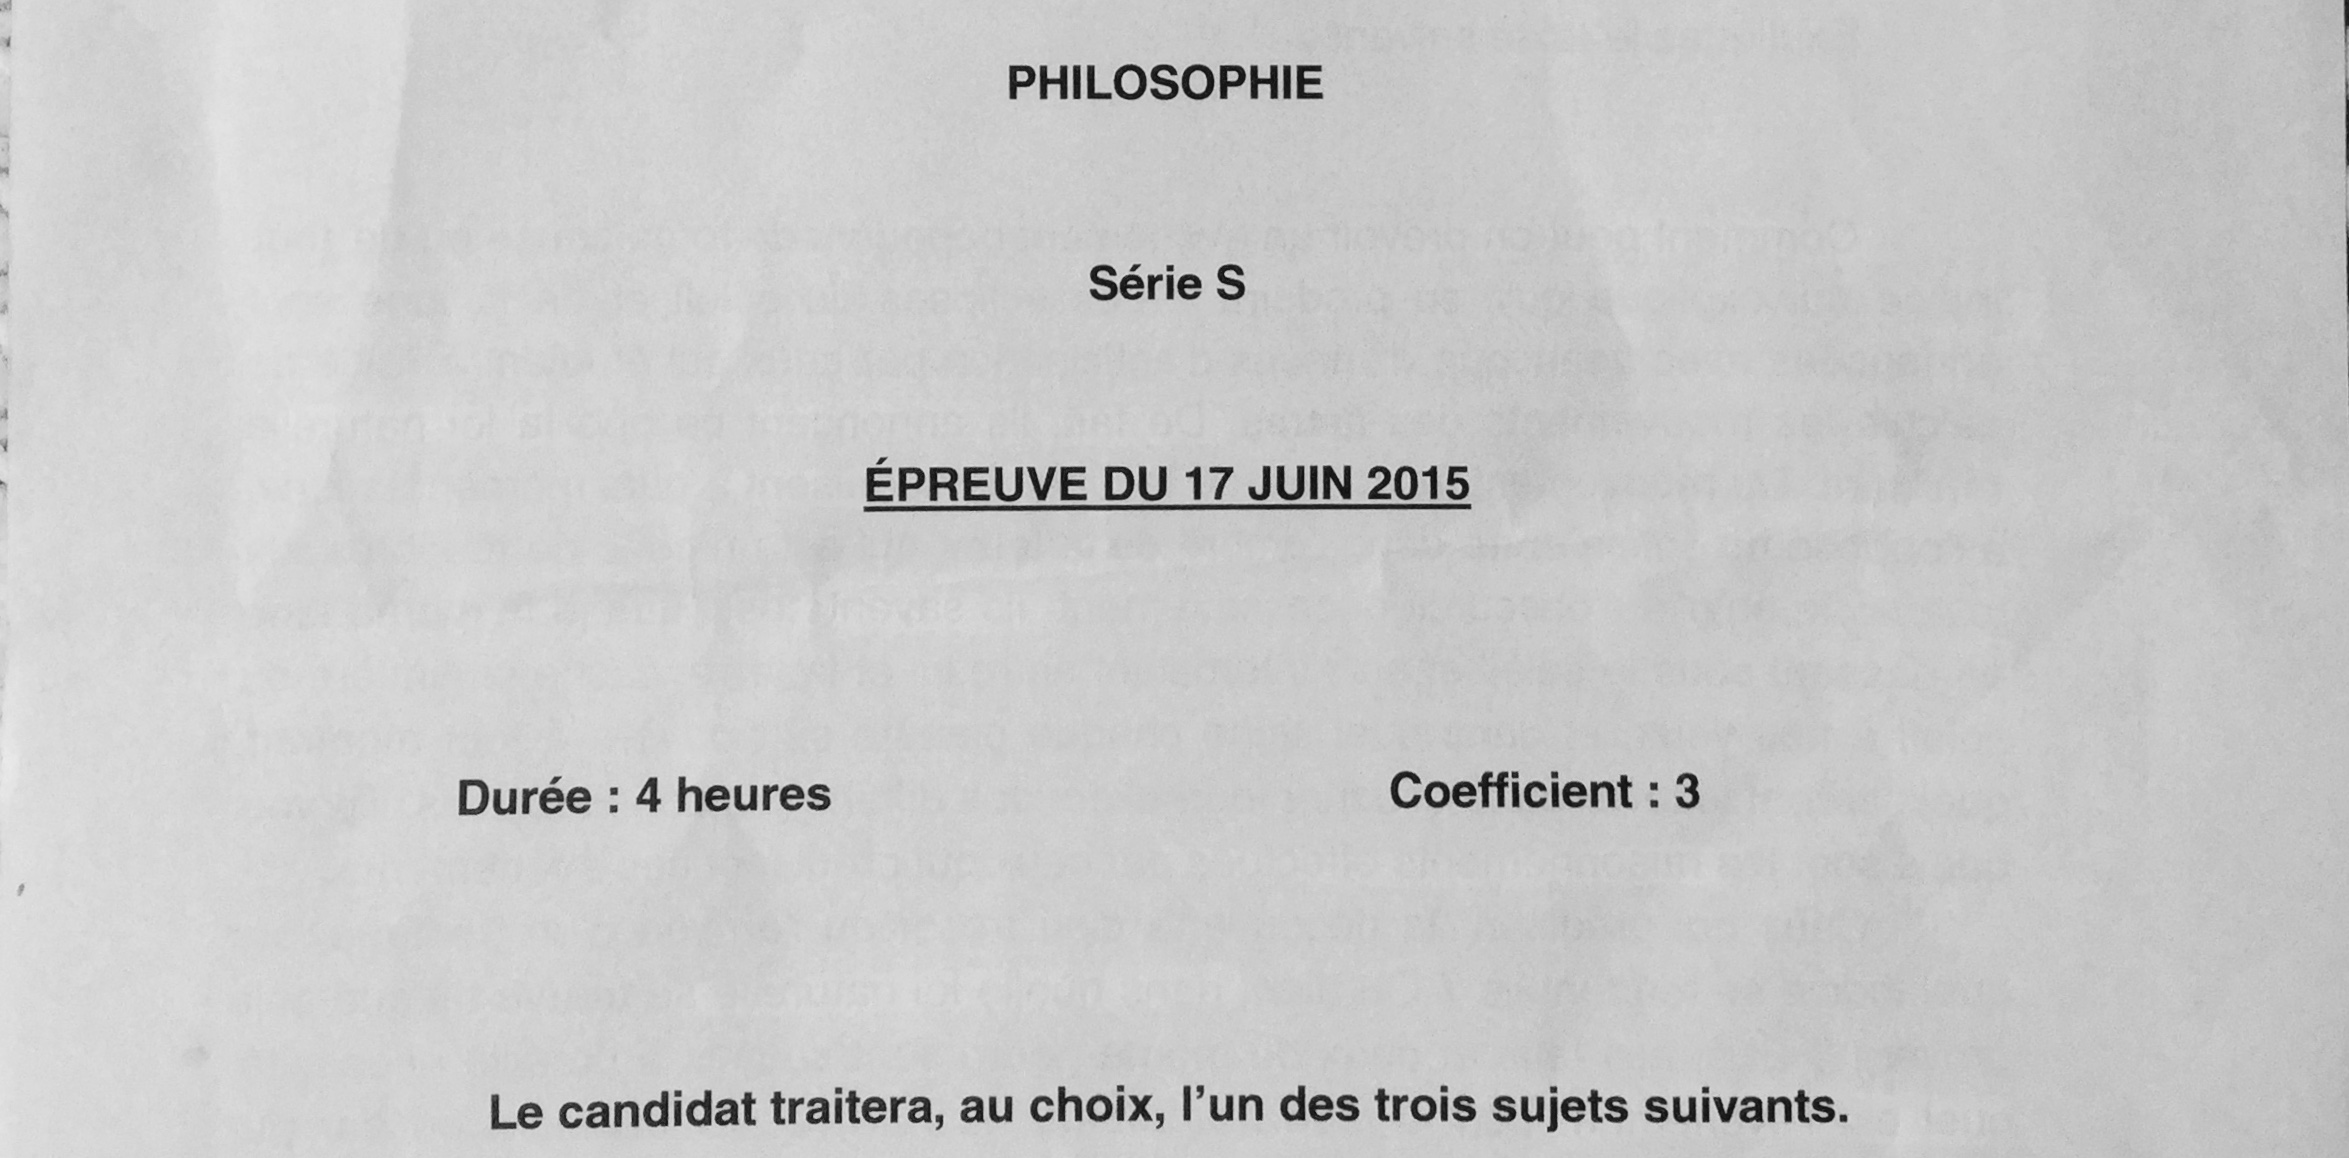 Dissertation bac 2007 philo